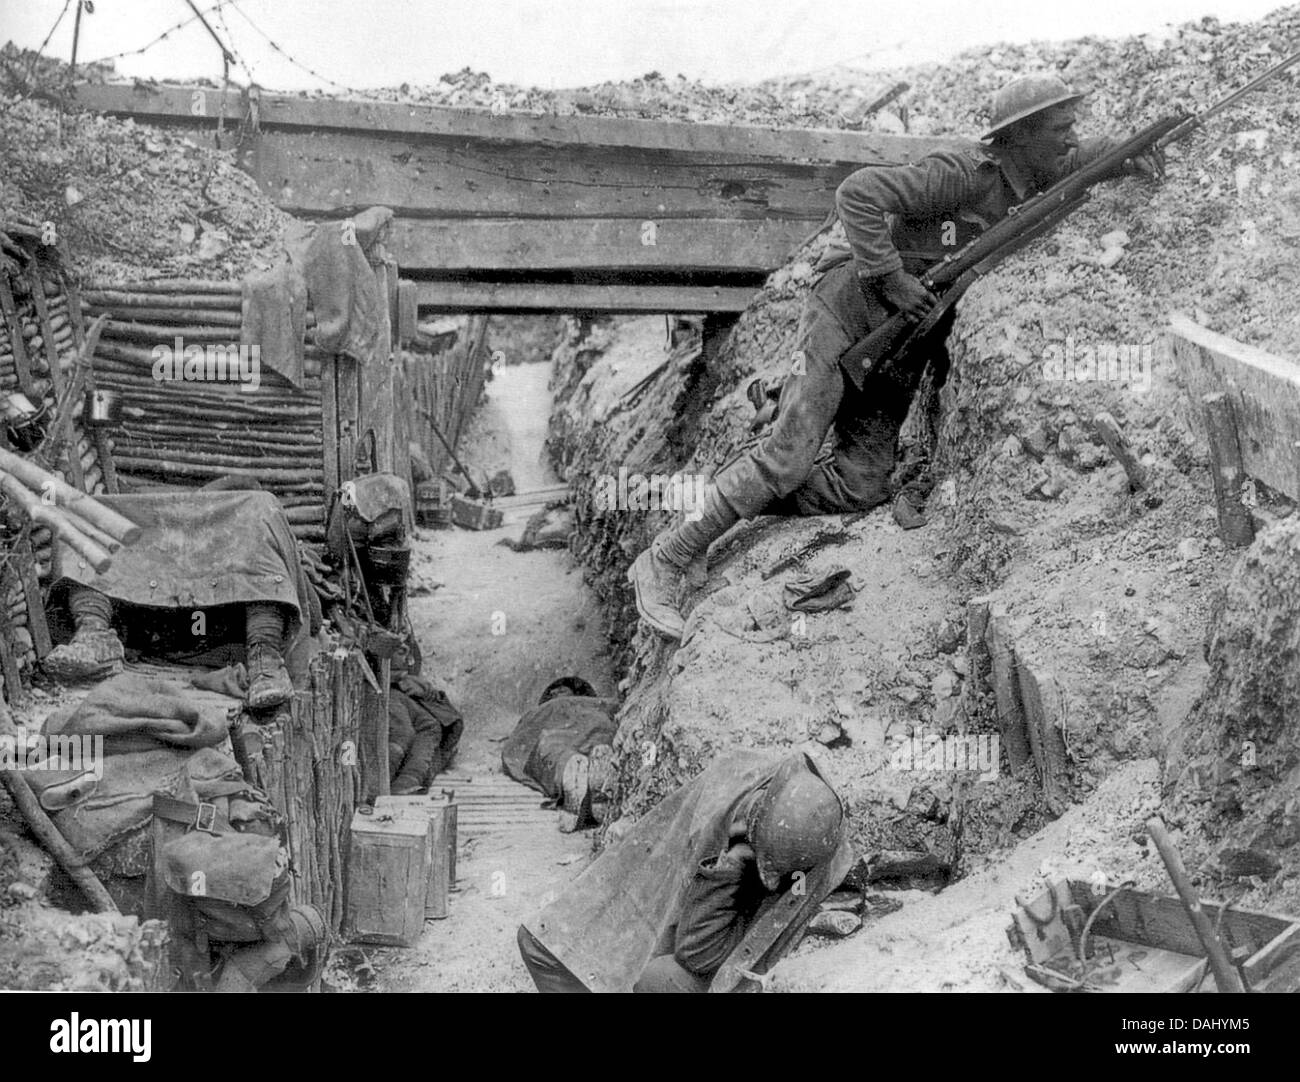 CHESHIRE REGIMENT Soldiers from A Company,11th Battalion, at Ovilliers-la-Boiselle, during Battle of the Somme July - Stock Image